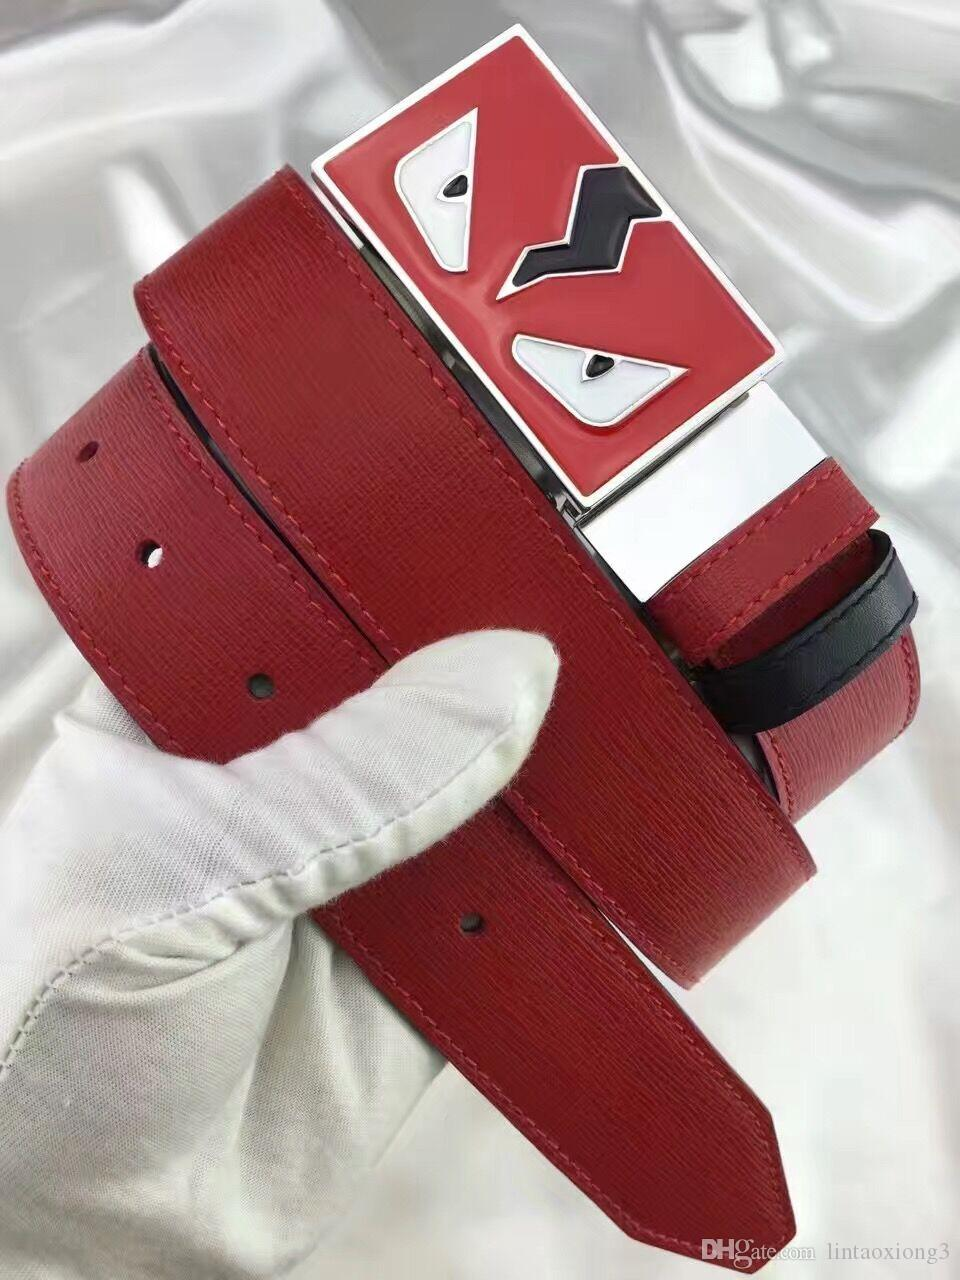 2a71b4d90640e Yellow Blue Red Cat Buckle Designer Belts With Box Men High Quality Luxury  Leather Belt Men Women Buckle Men Belts Luxury Belt Size Chart Batman Belt  From ...